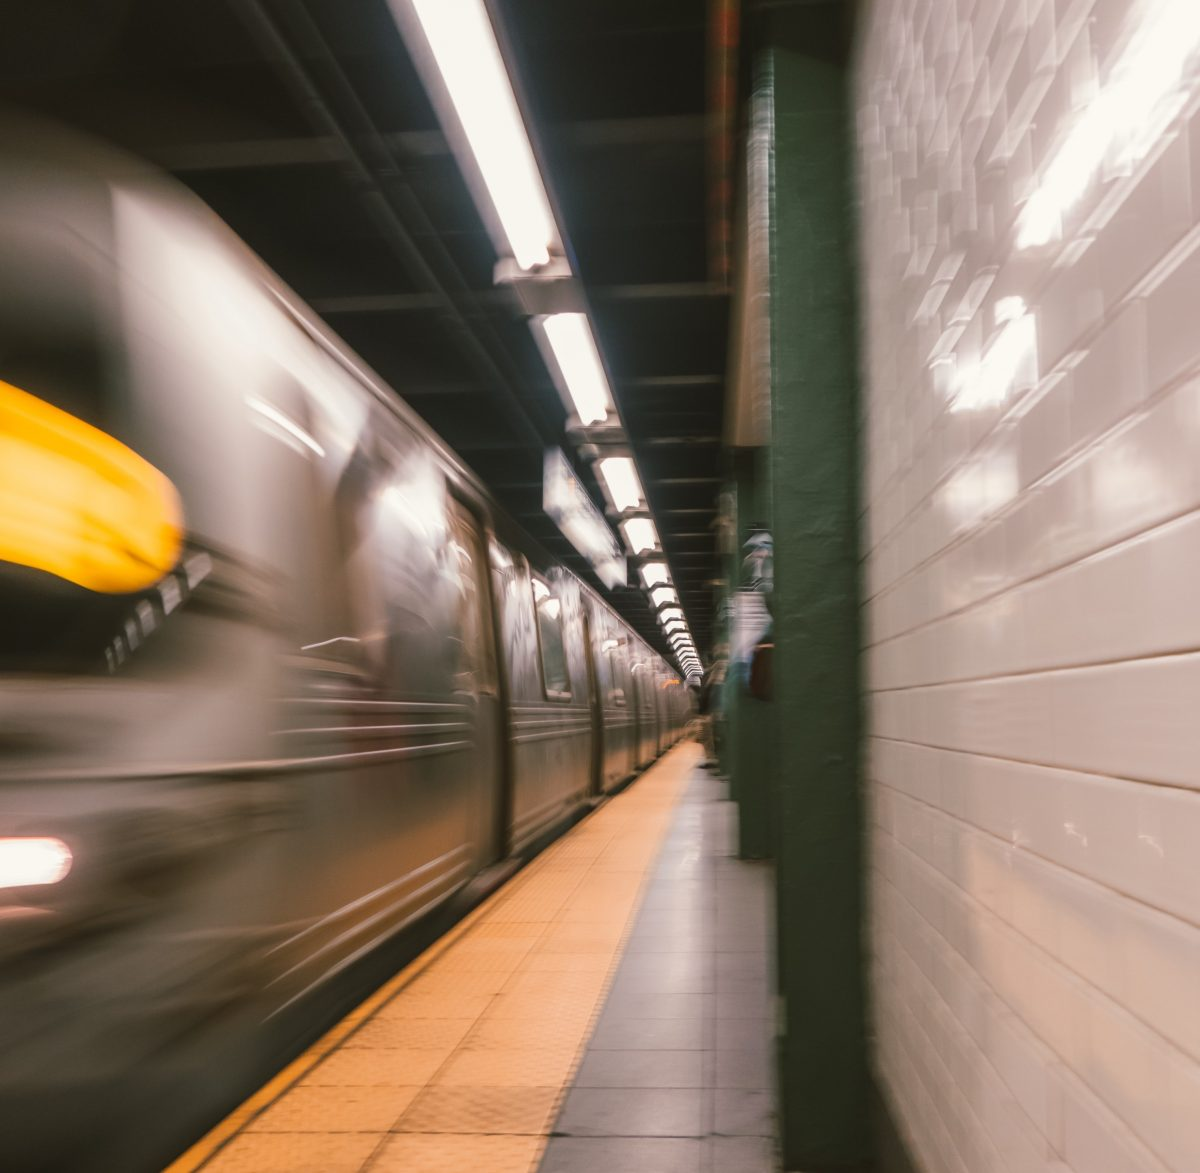 9 transportation types in NYC: Options and price [low to high]